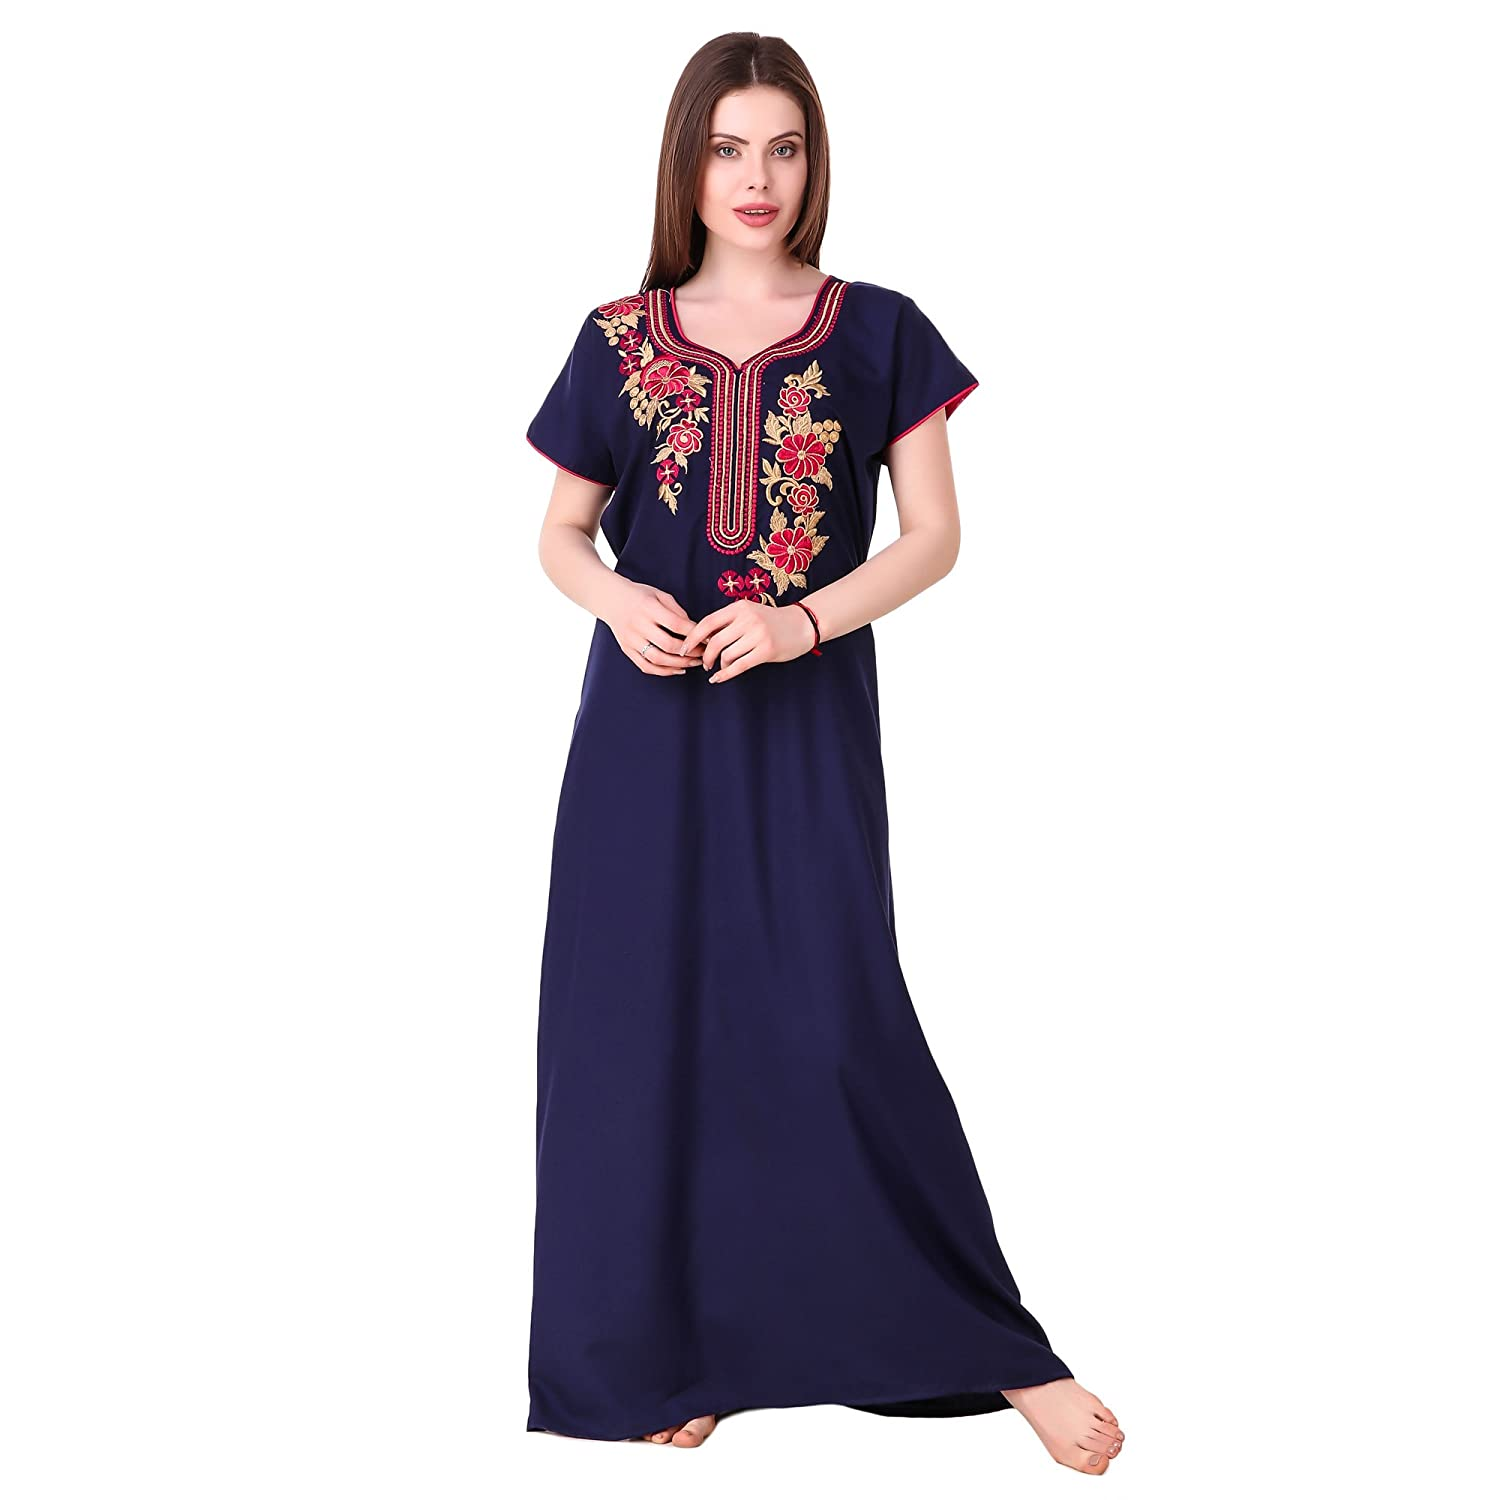 d6c613b6c MILIT Best Cotton Long Embroidered Nighty for Women s(Bust Size Upto 44  inches) Blue  Amazon.in  Clothing   Accessories